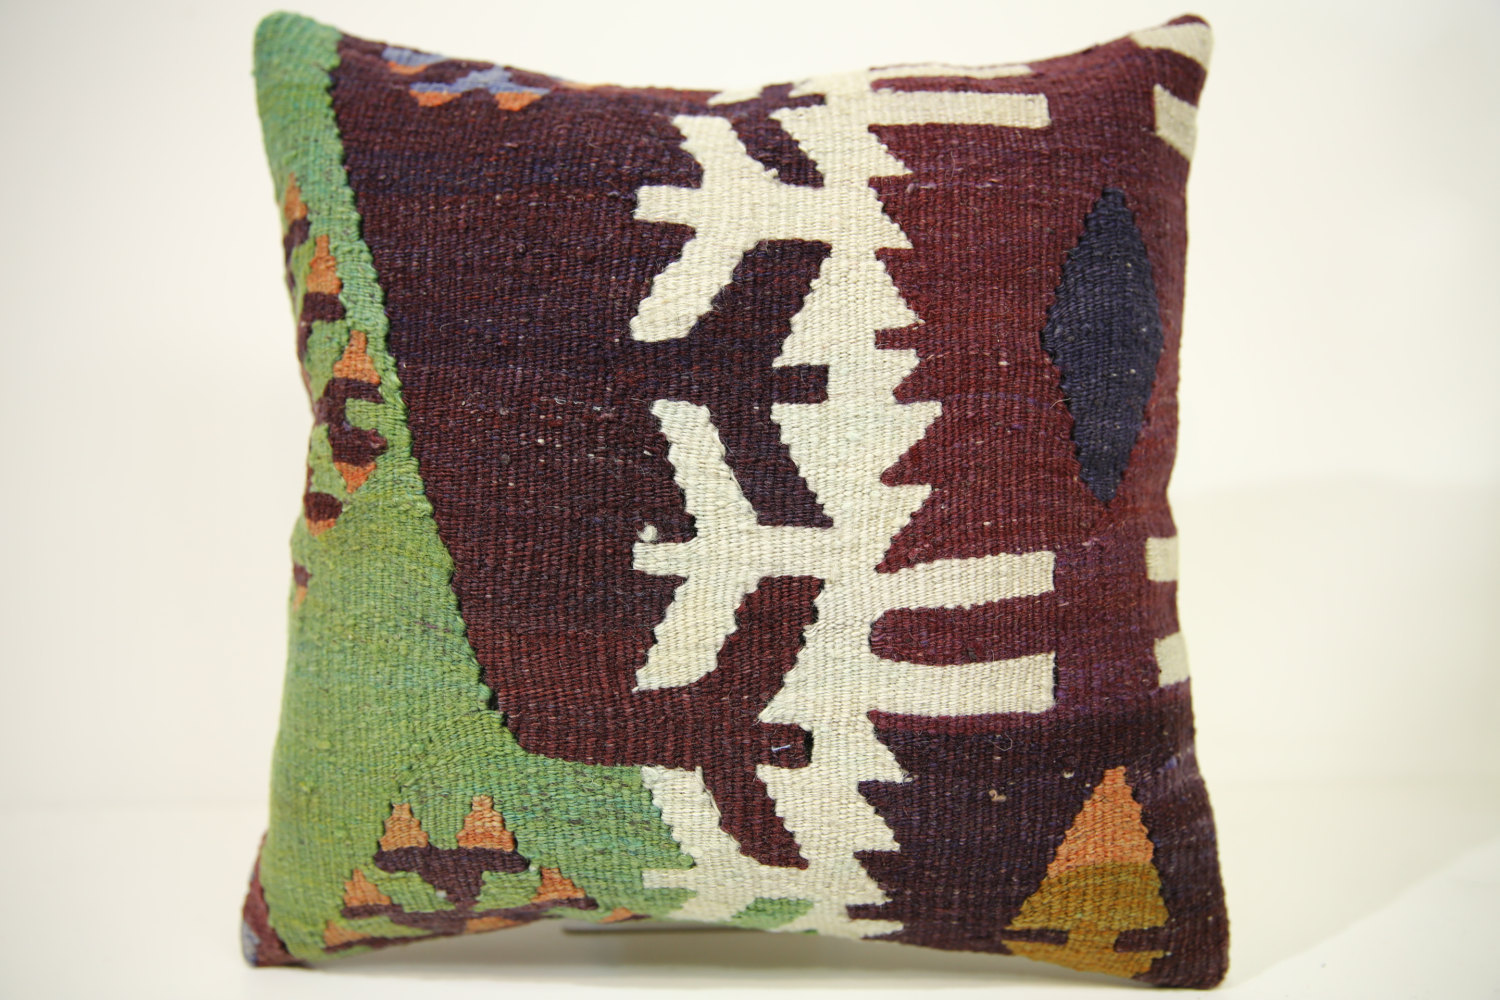 Kilim Pillows | 14x14 | Kelim pillows | 1392 | Turkish pillows , Kilim cushion